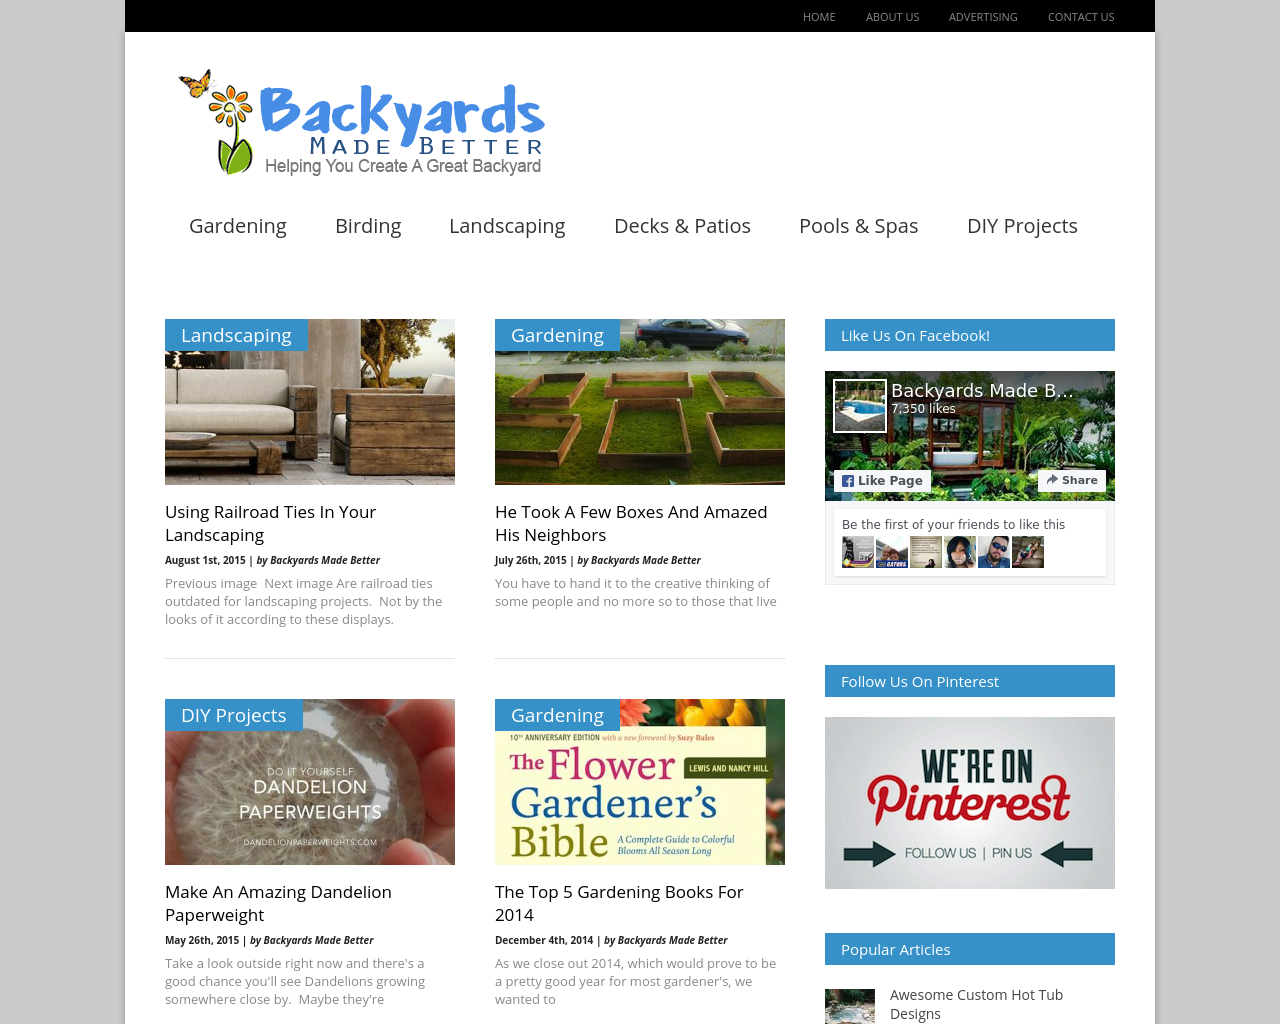 Backyards-Made-Better-Advertising-Reviews-Pricing